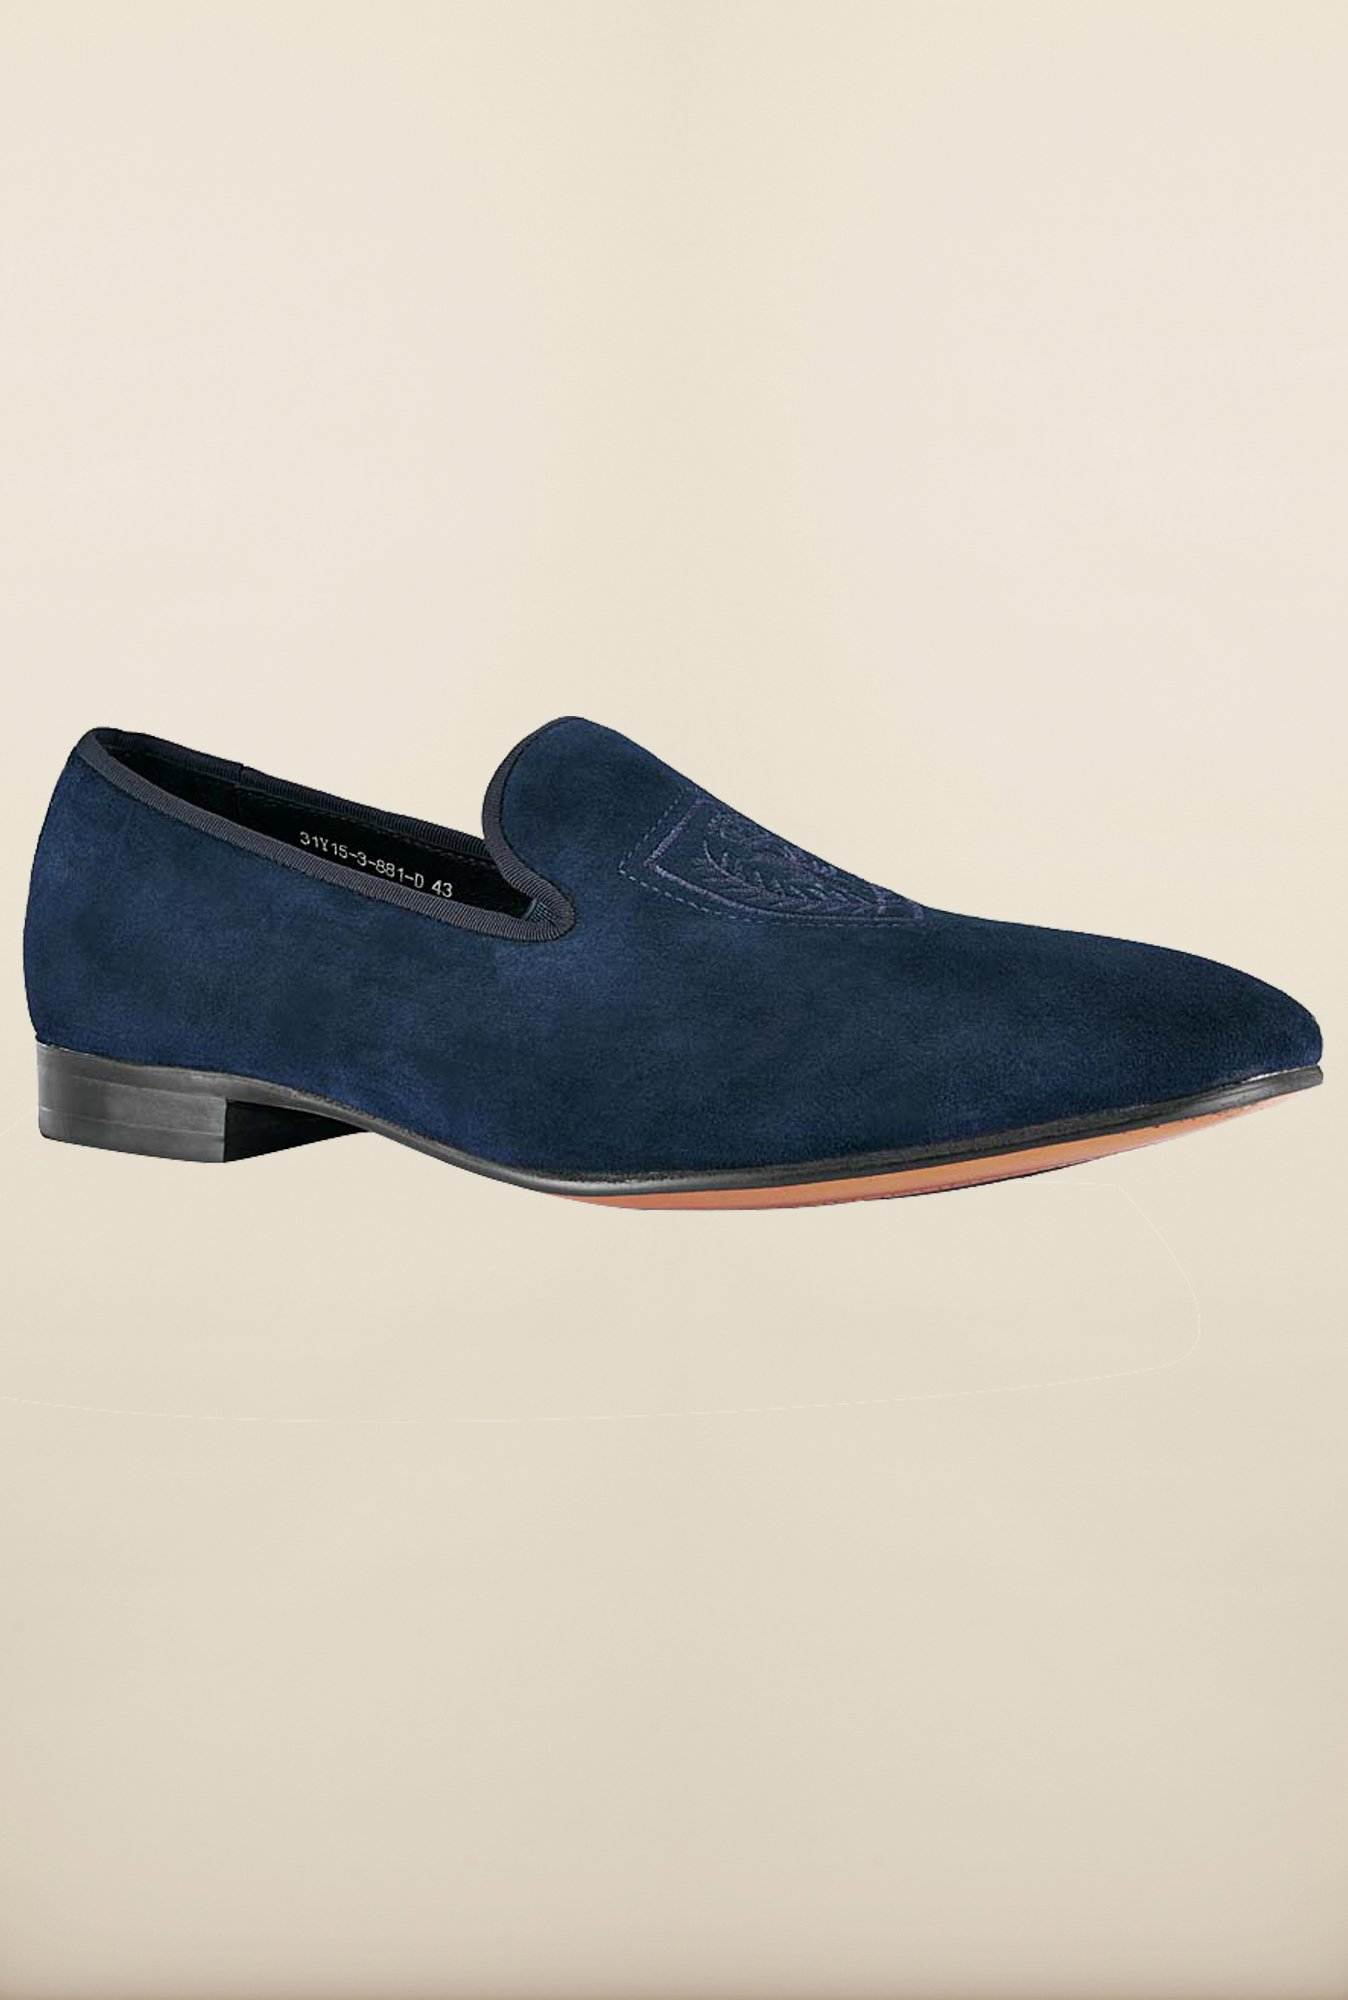 Tresmode Navy Bebillion Navy Loafers